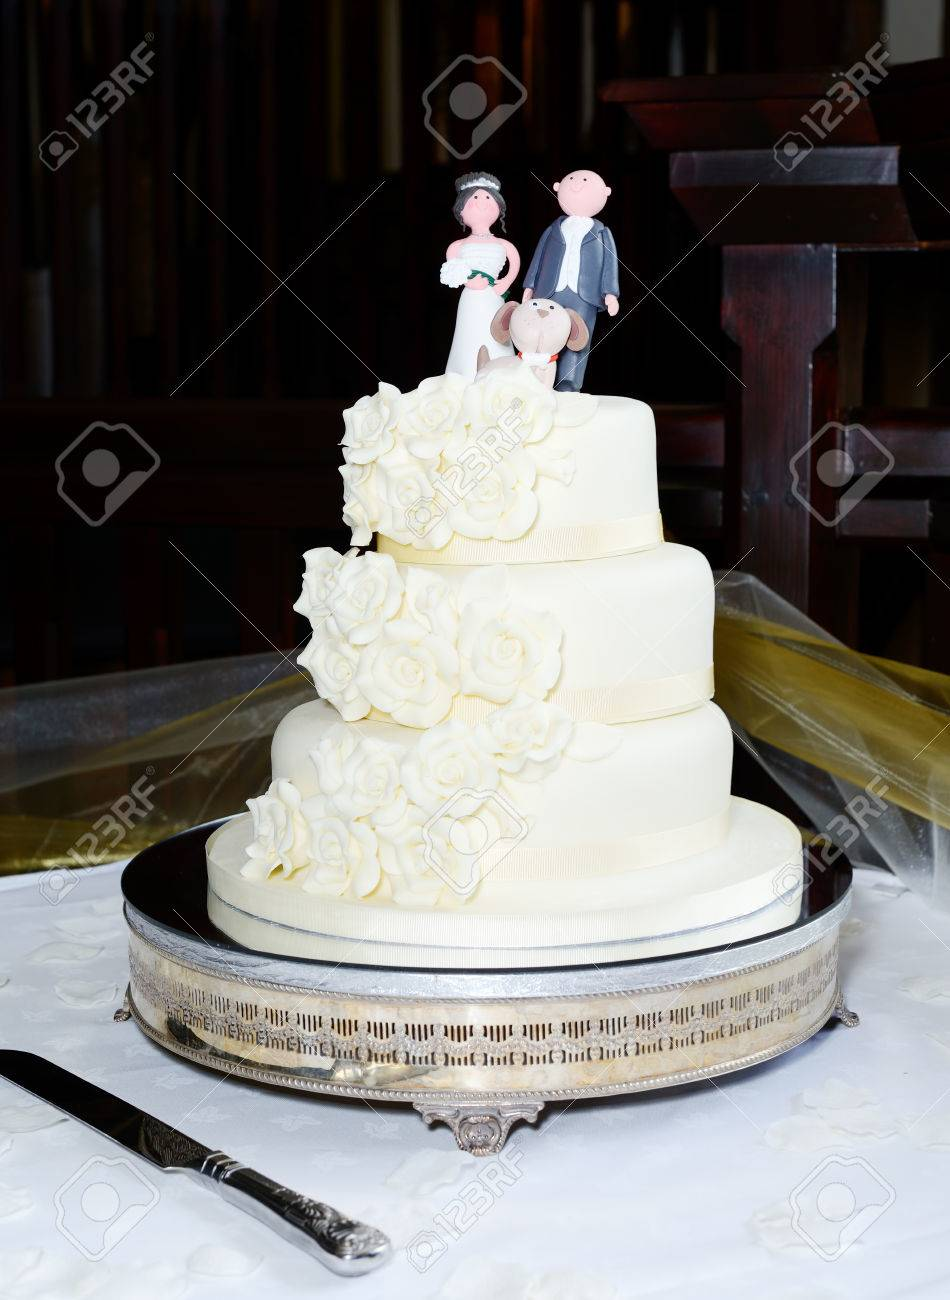 Three Tier Wedding Cake With Bride, Groom And Dog Topper At ...